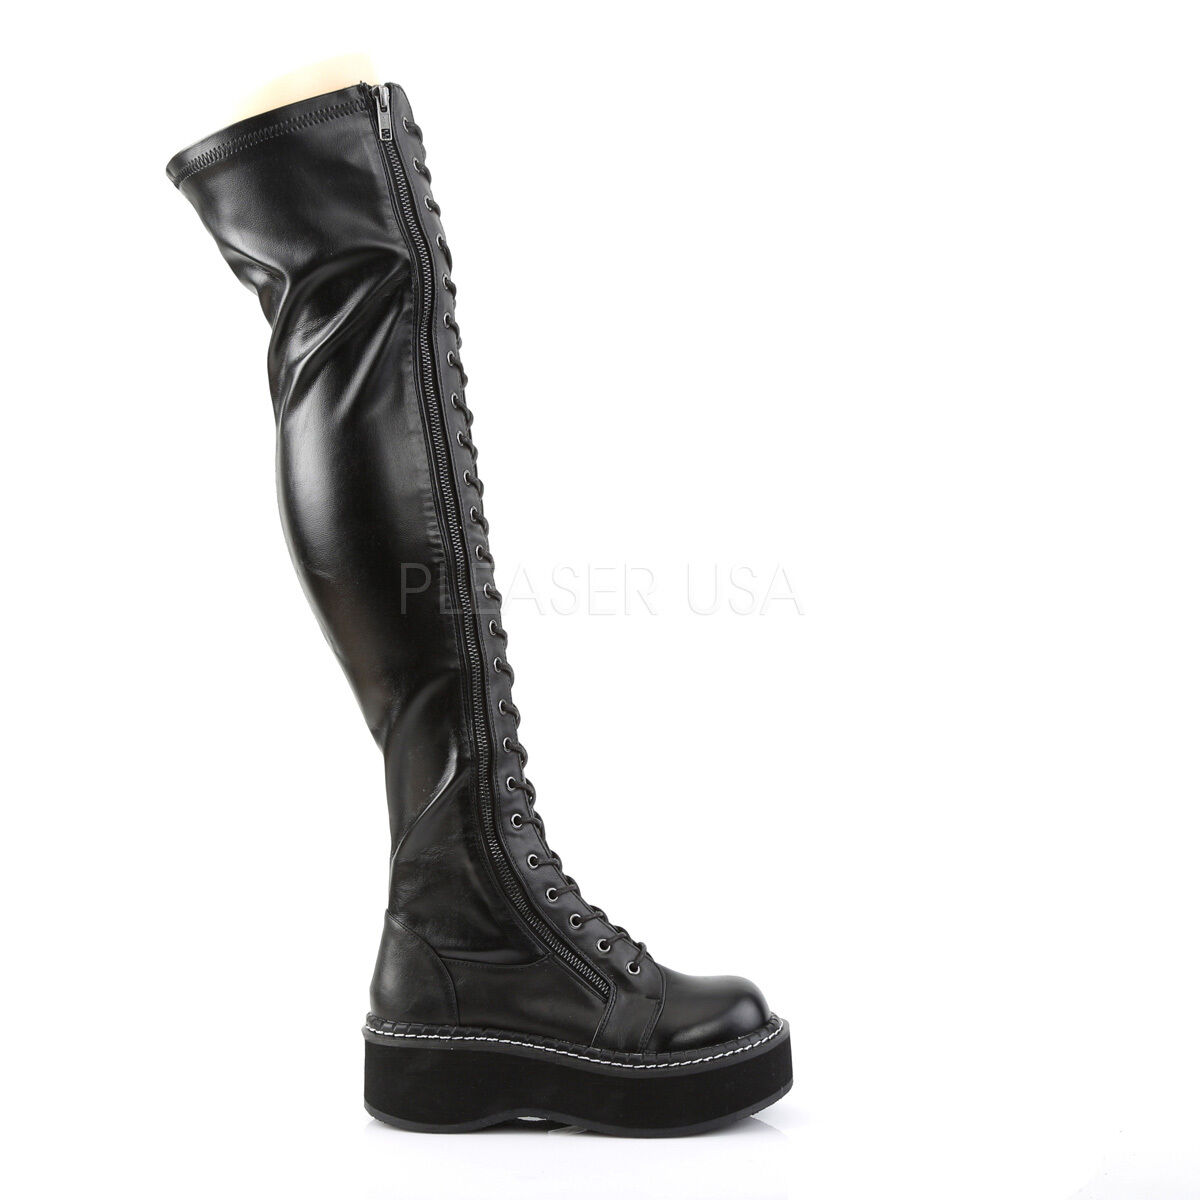 Demonia Demonia Demonia 2  Platform Stretch Matte Black Thigh High Zipper Boots Punk Goth 6-12 05e750